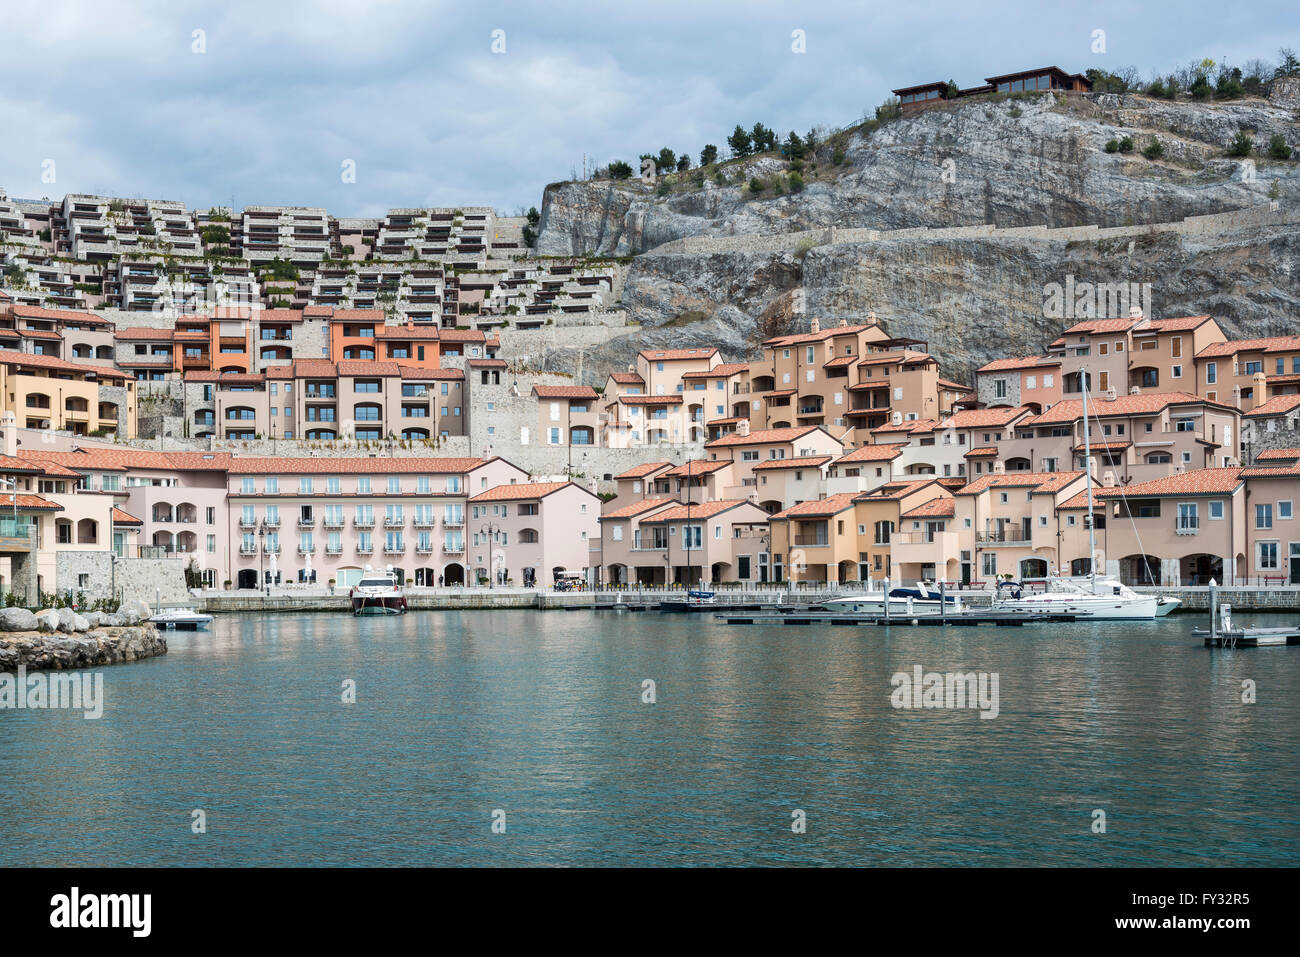 Porto Piccolo, exclusive holiday resort on the Adriatic coast, town of Sistiana, Duino-Aurisina, Province of Trieste - Stock Image